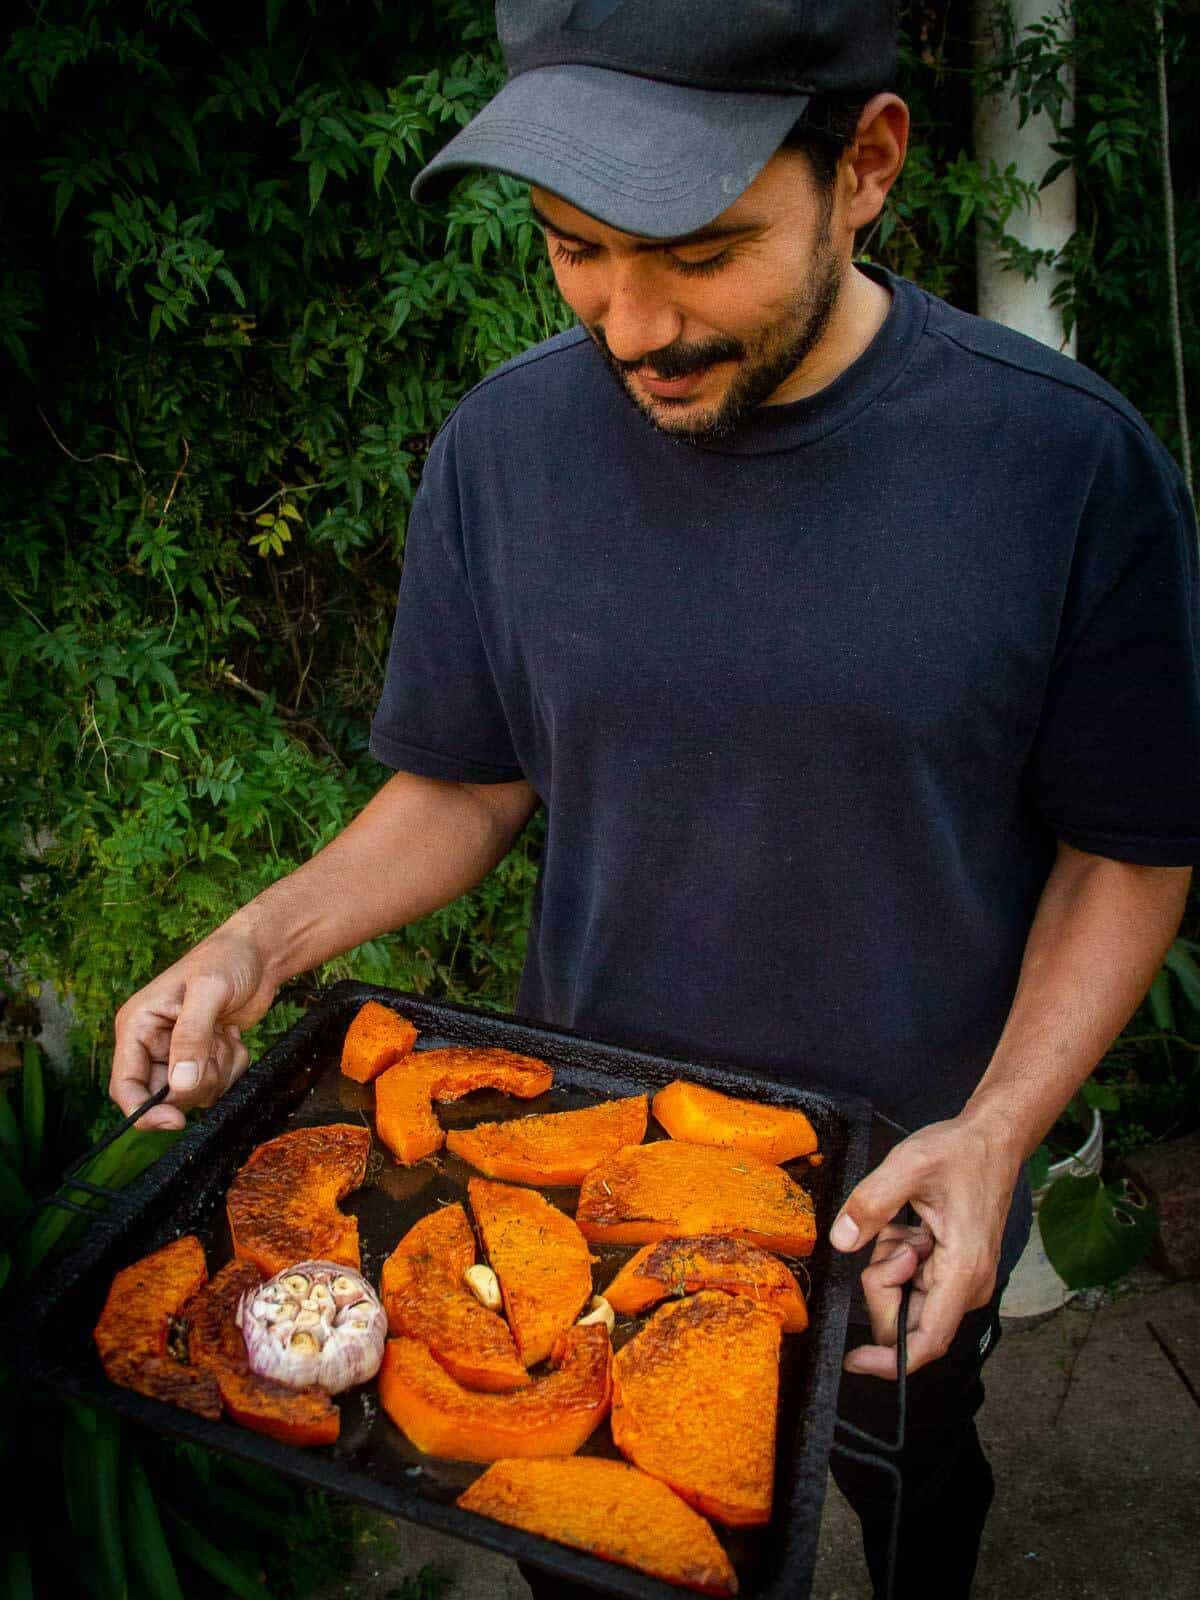 gus holding a roasted butternut squash tray